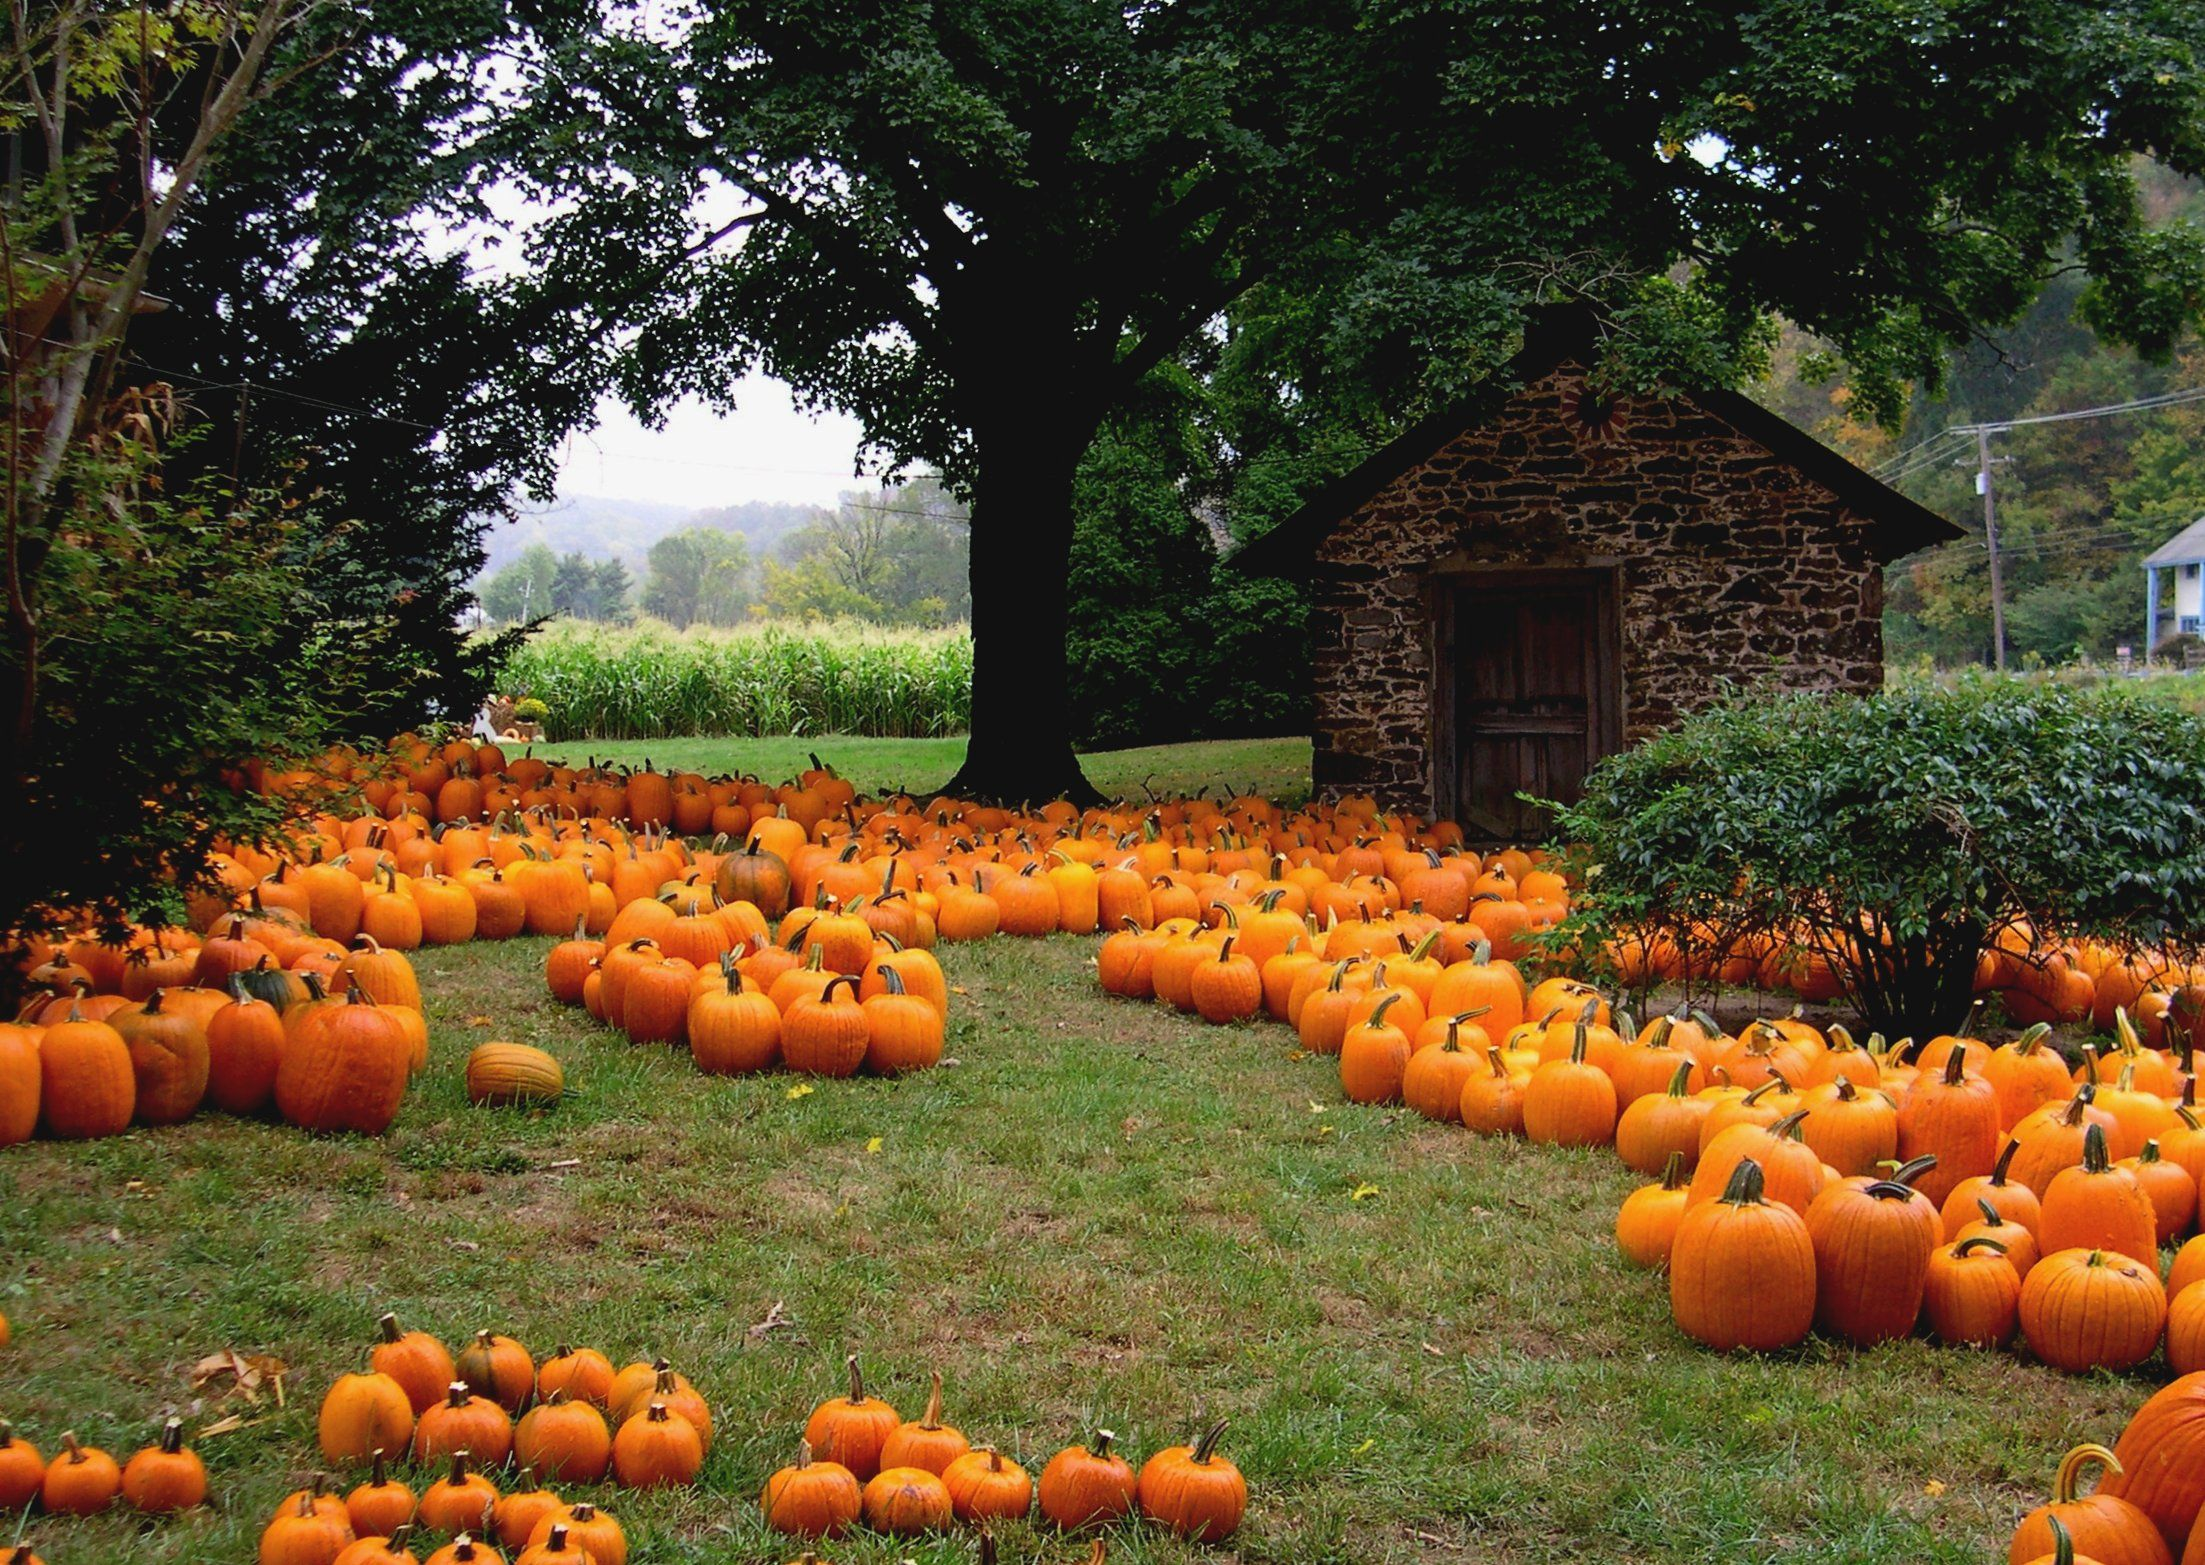 11 things to do in the fall with your friends - Fall Pumpkins